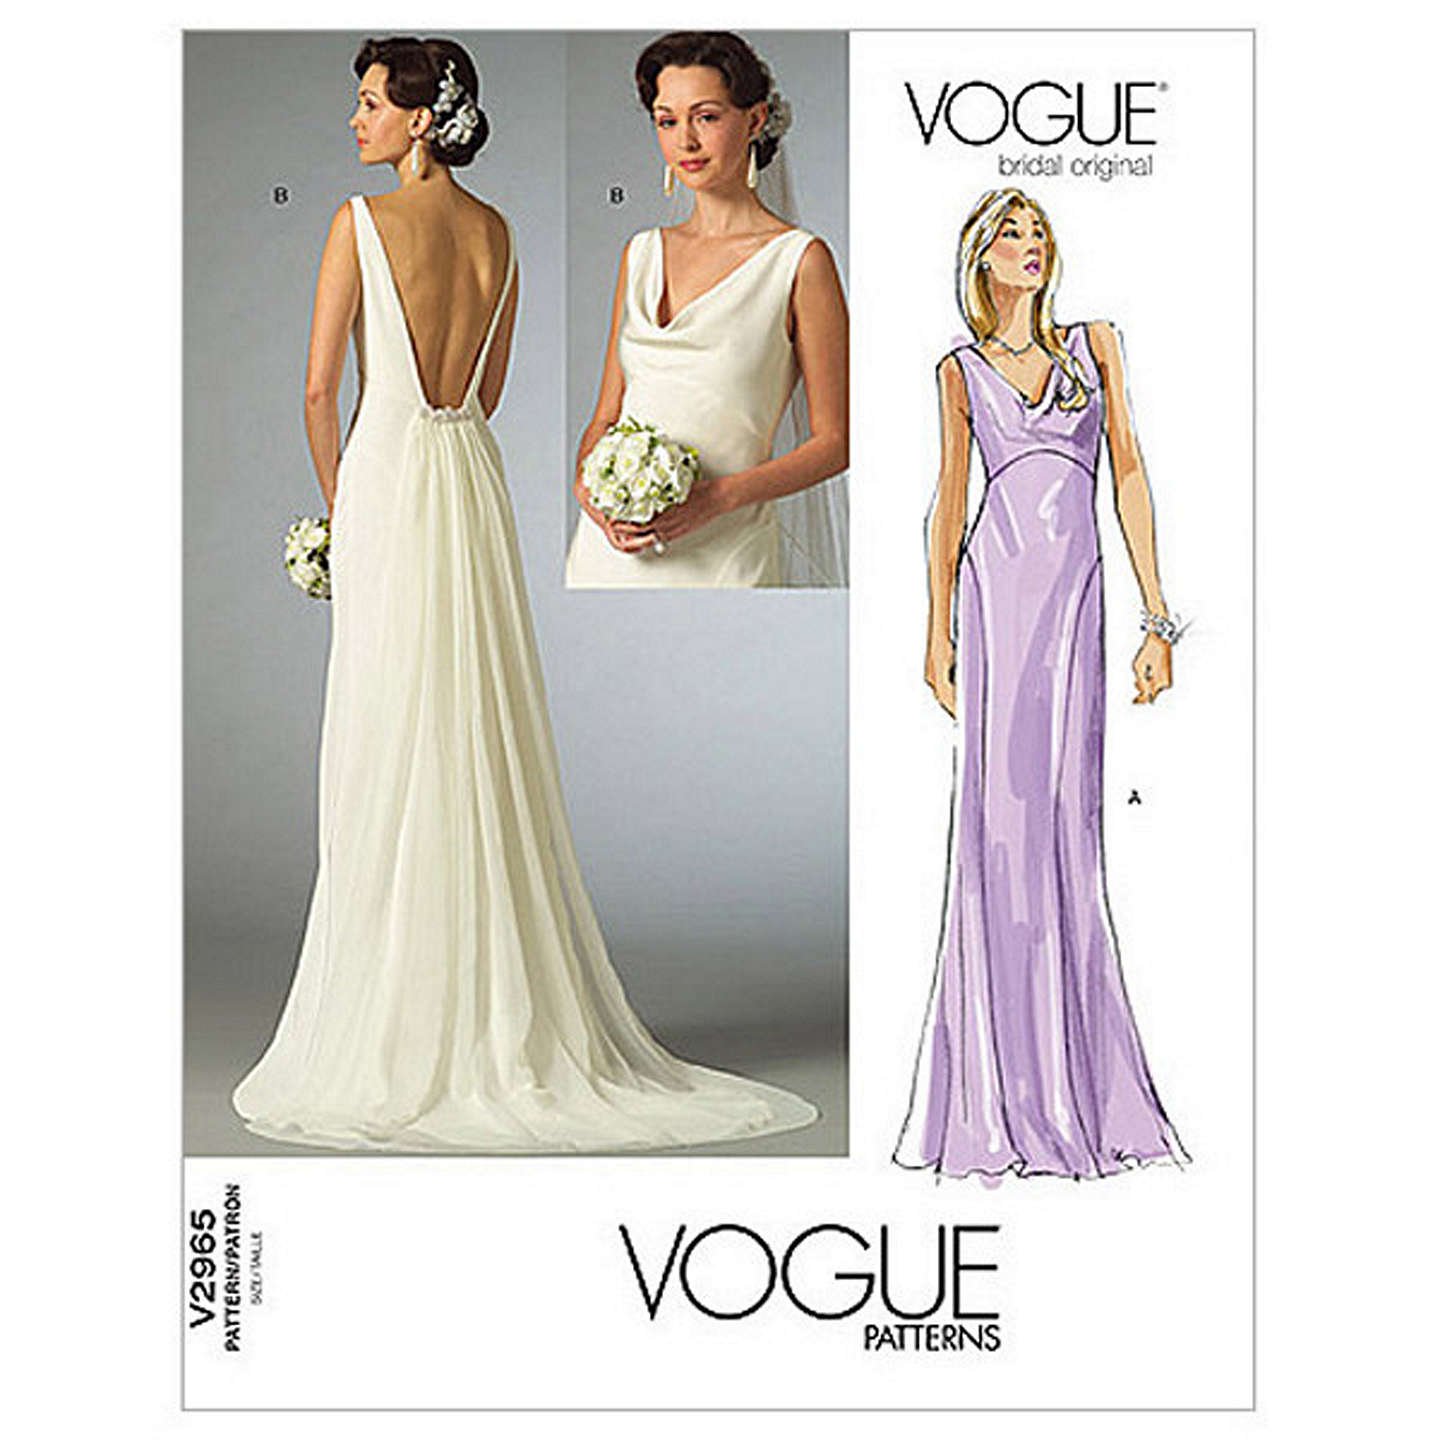 Sewing Patterns For Wedding Gowns: Vogue Women's Bridal Original Dresses Sewing Pattern, 2965